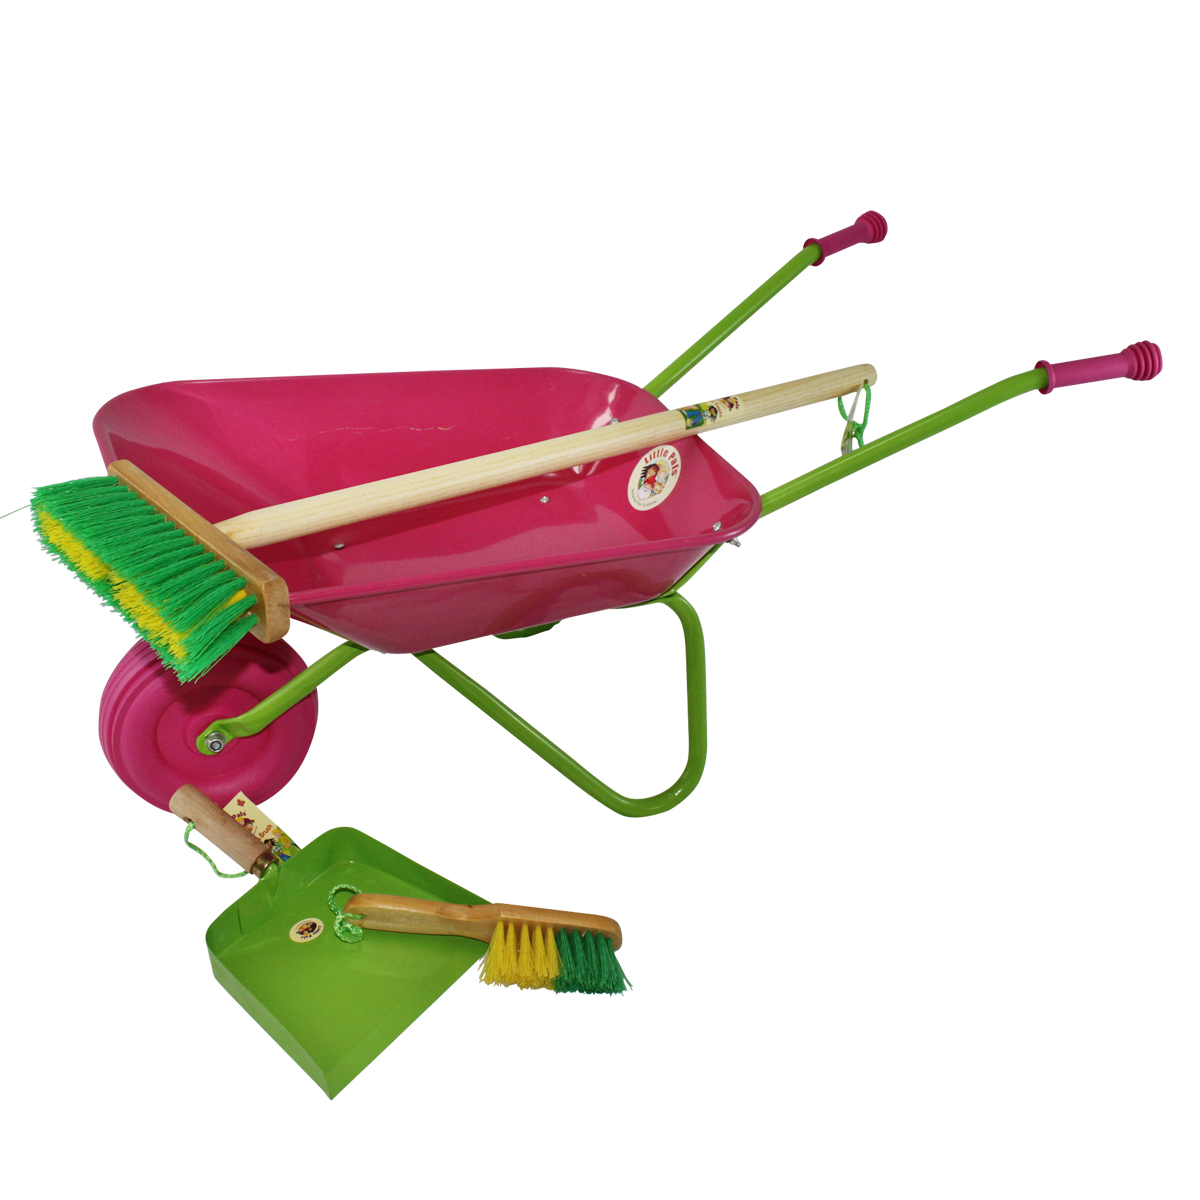 Childrens wheelbarrow and sweep up set, pink